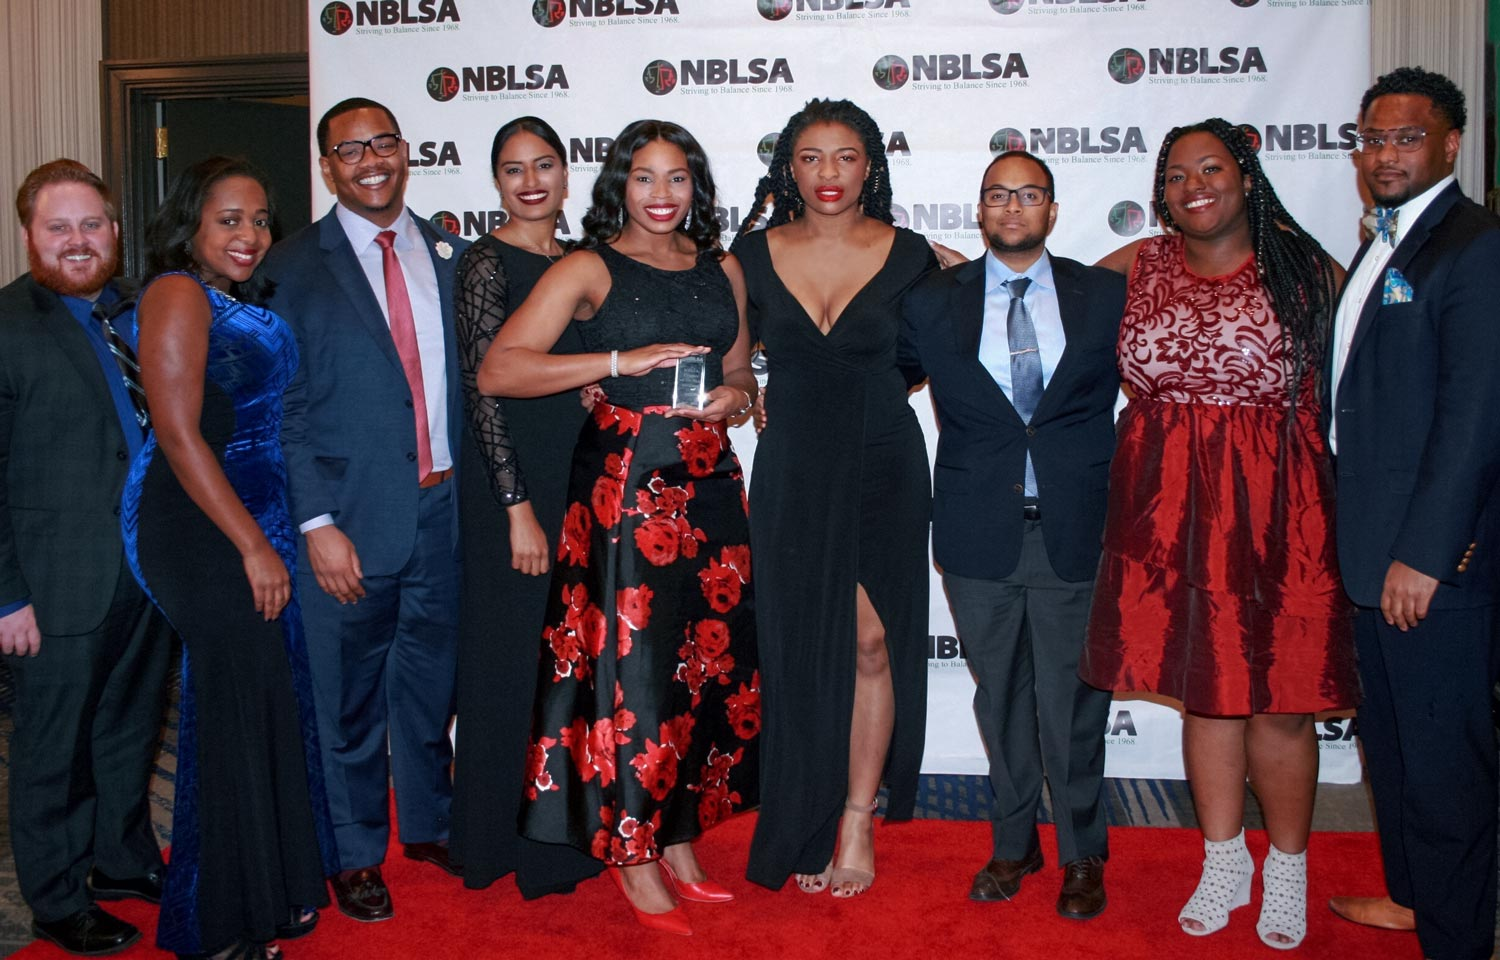 UVA's very active chapter of the Black Law Students Association won national chapter of the year honors for the fifth time since 2002.